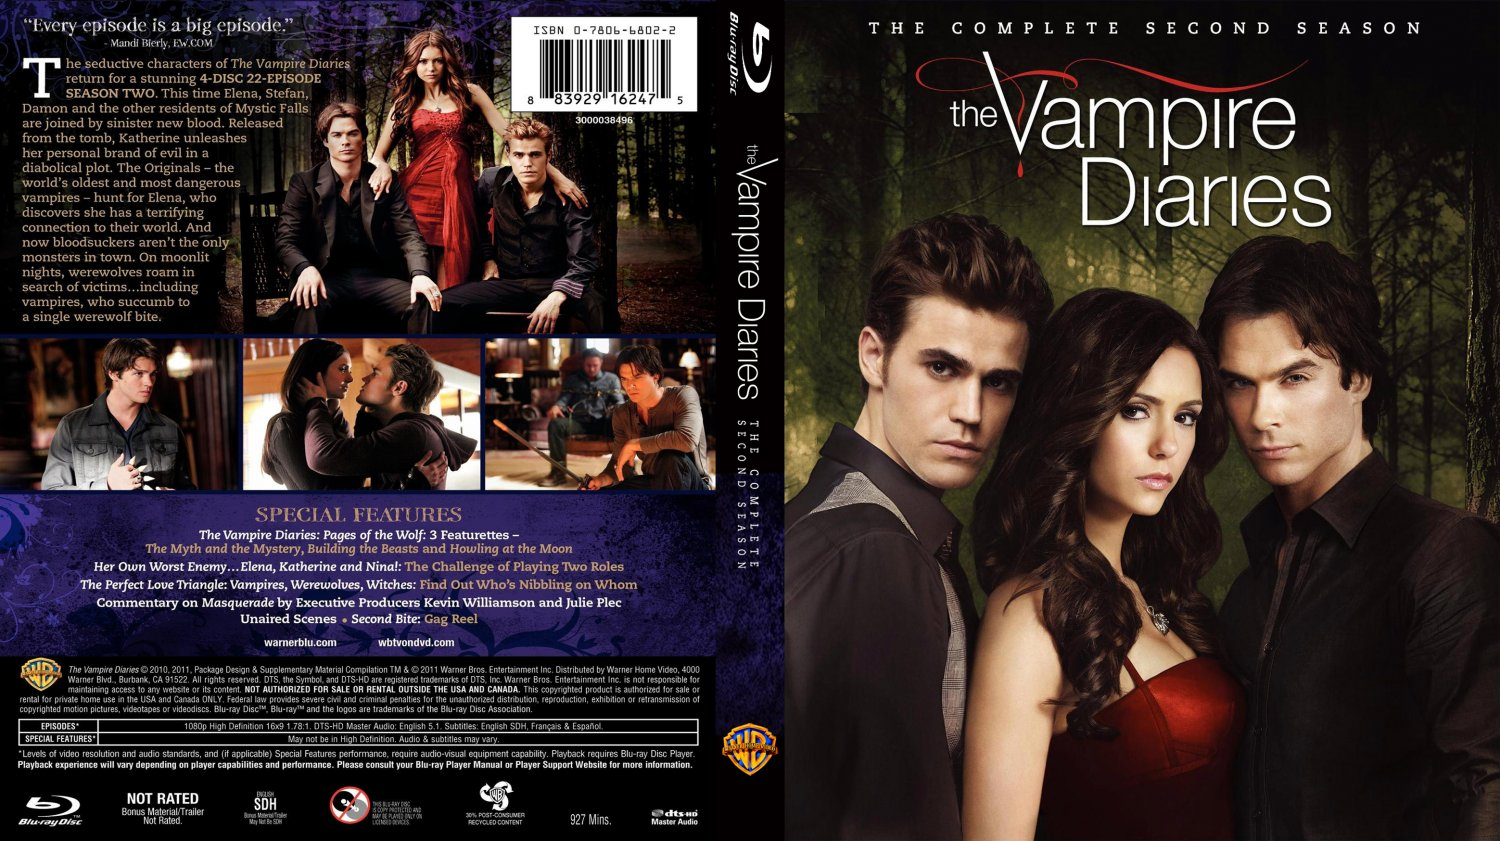 how to watch vampire diaries season 2 online for free